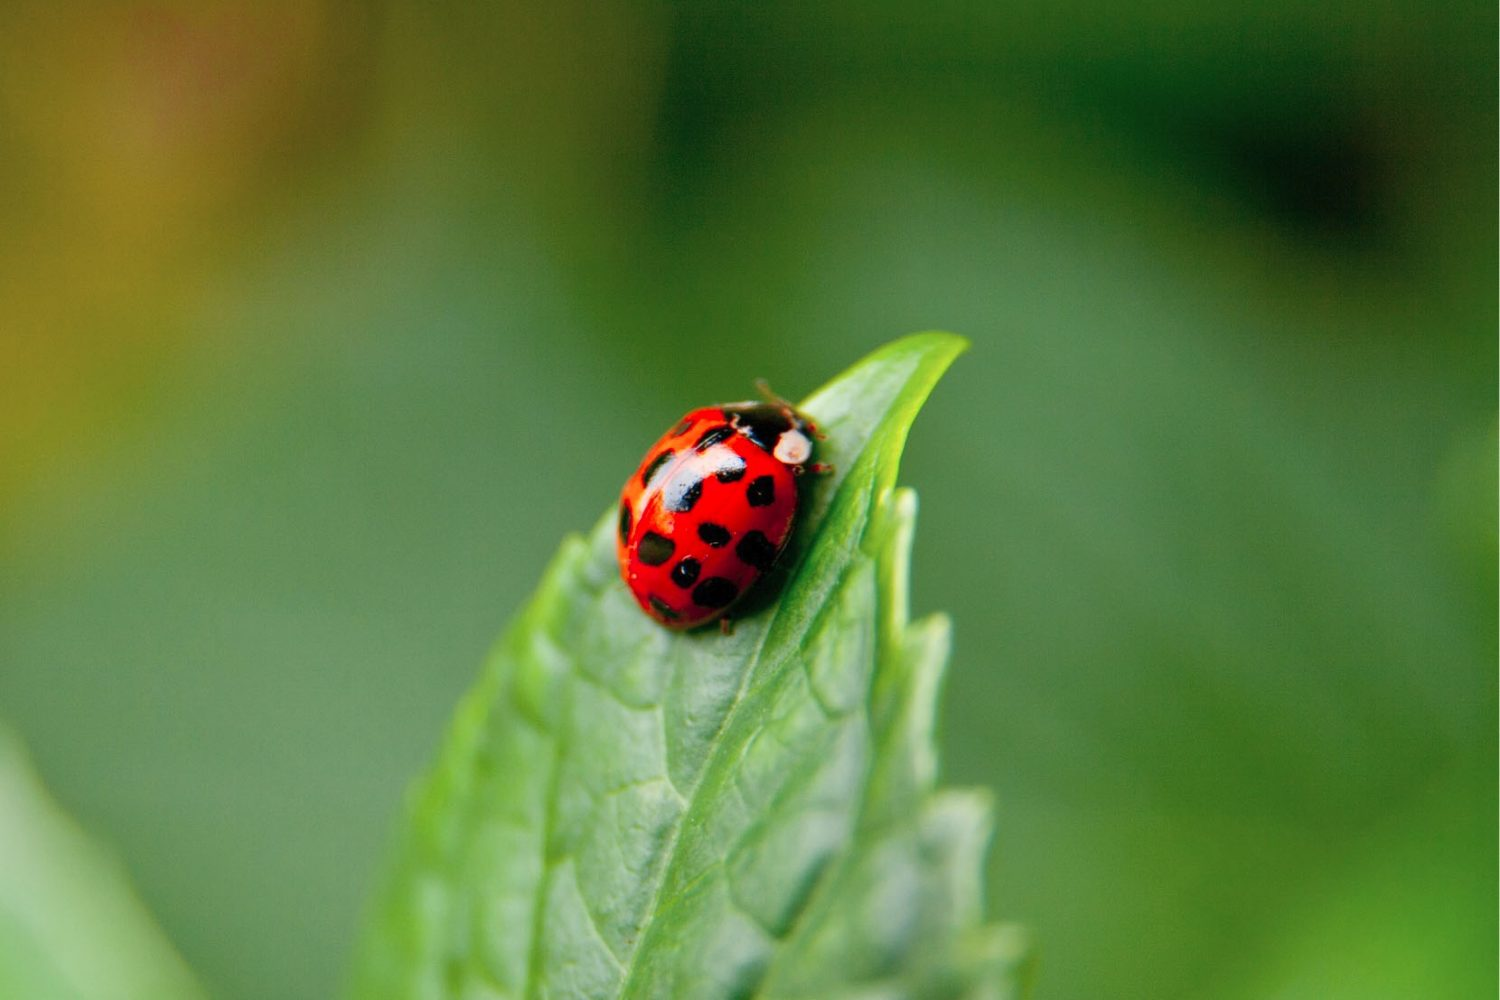 A lady bug craws to the top of a leaf.